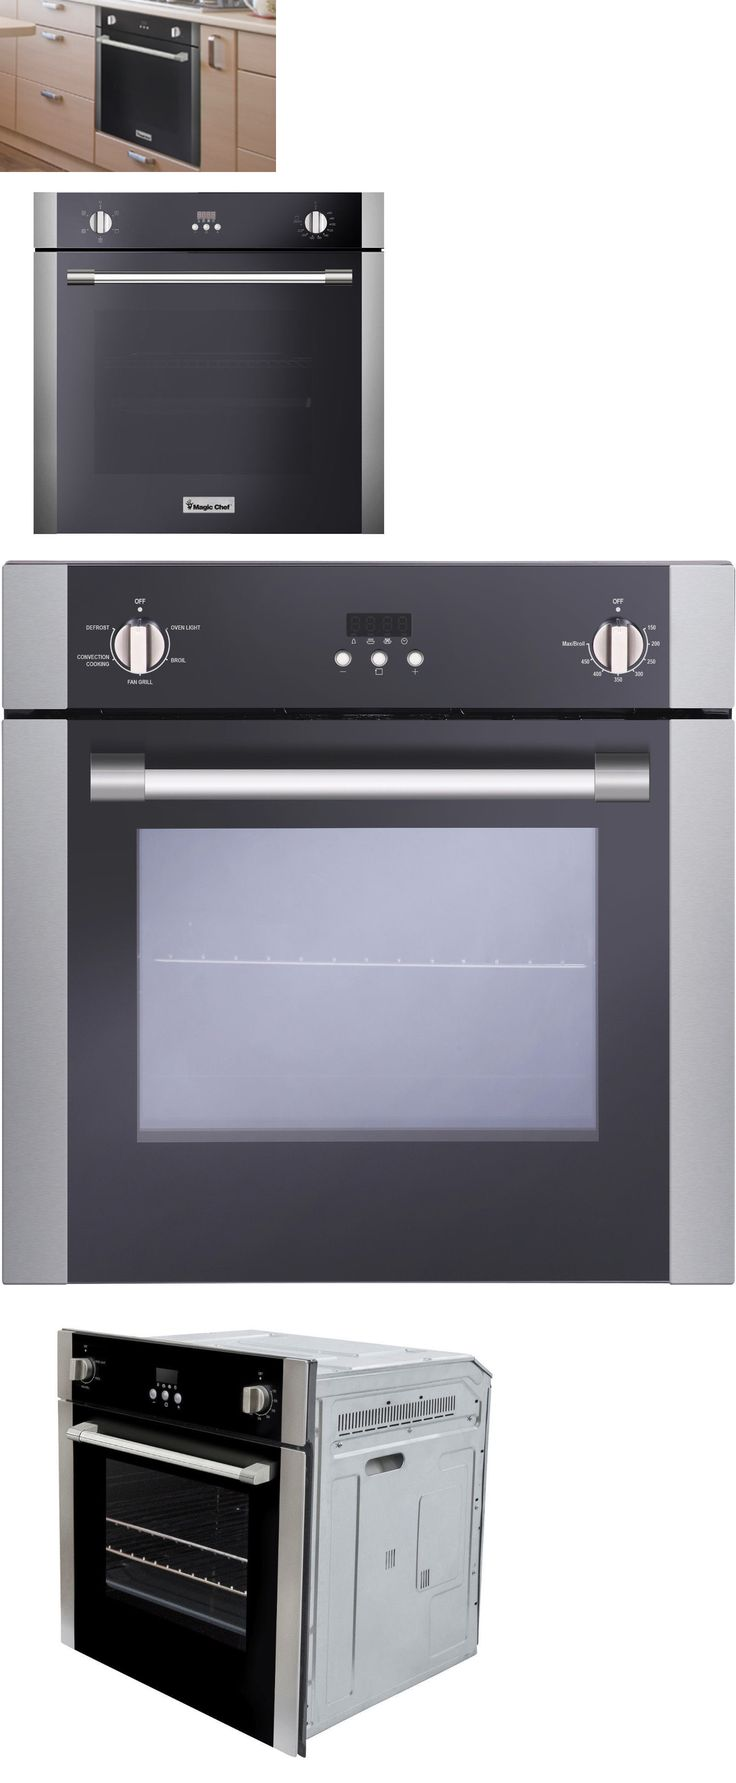 Wall Ovens 71318: Magic Chef Mcswoe24s 24 Electric Built In Single Wall Oven Stainless Steel -> BUY IT NOW ONLY: $749.18 on eBay!